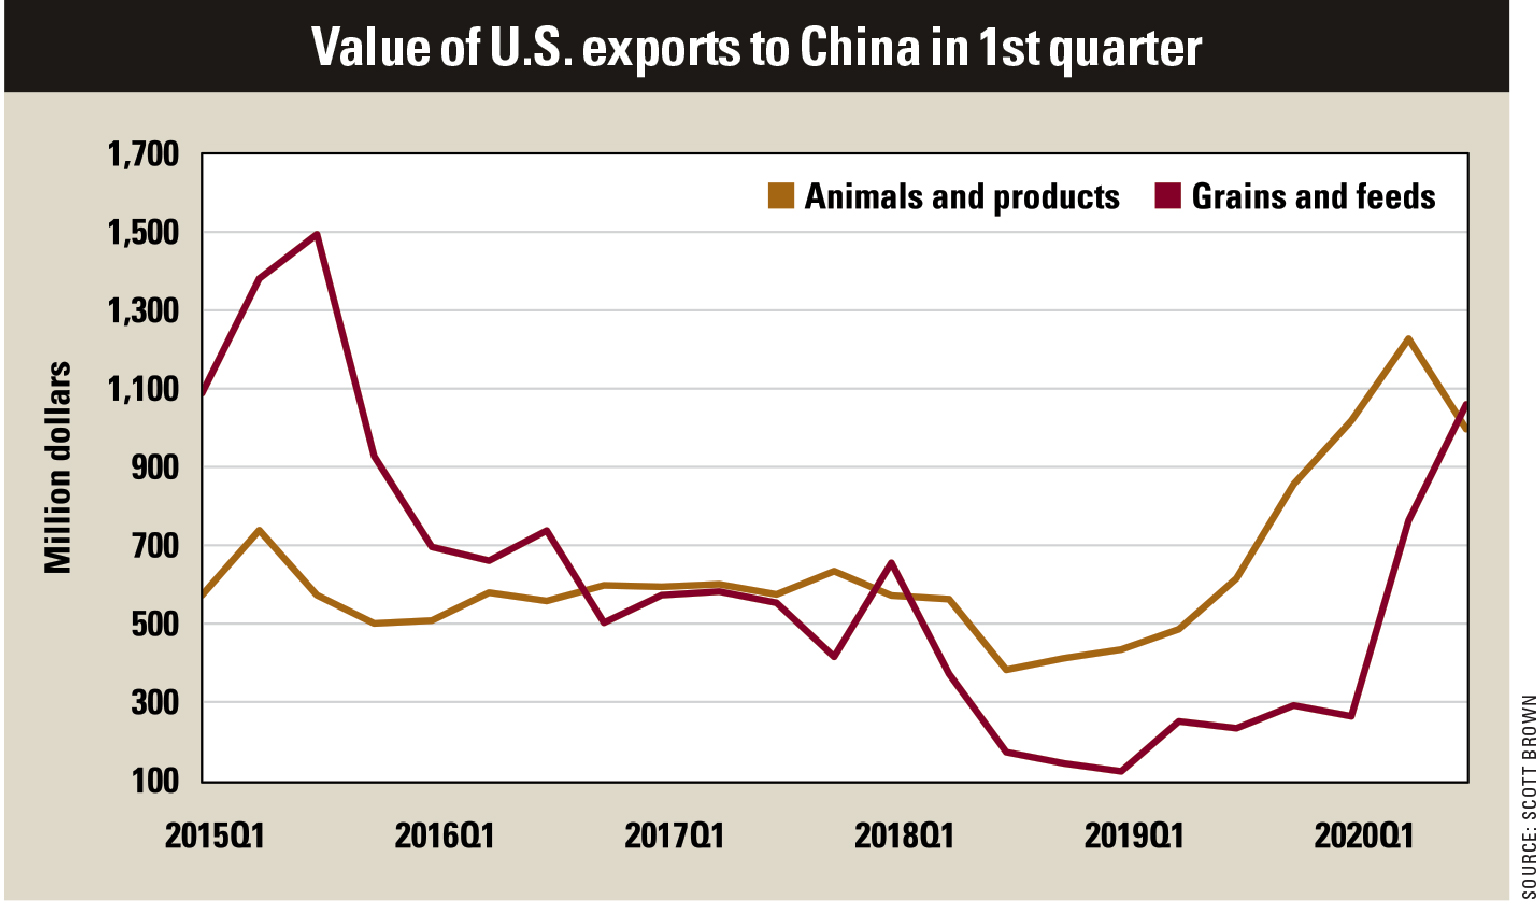 Value of U.S. exports to China in 1st quarter chart